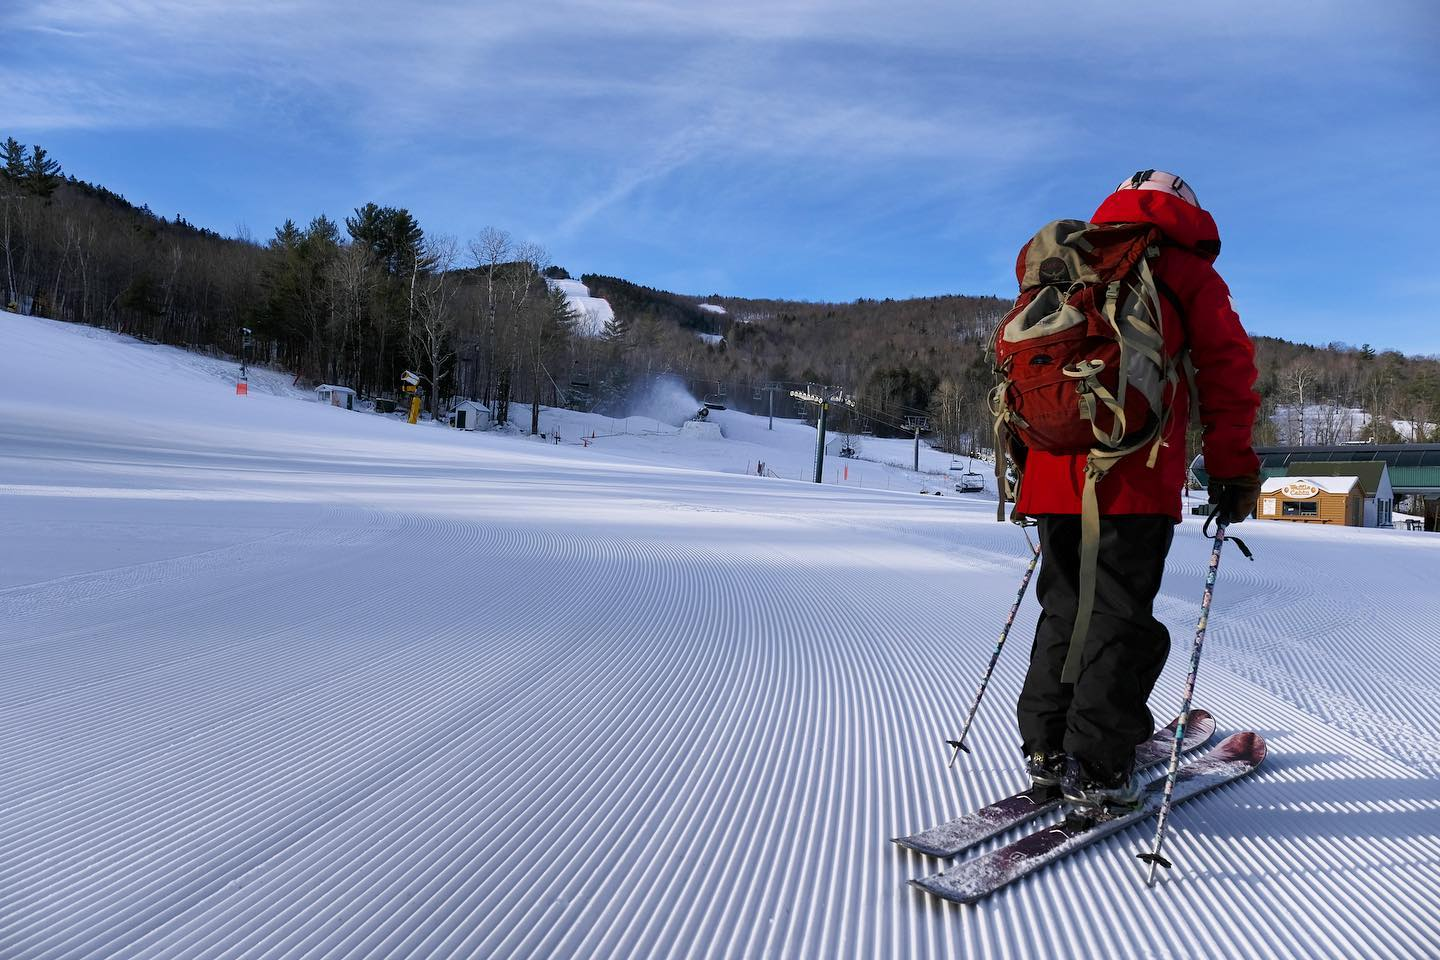 Image of a skier in red at Ragged Mountain Resort in New Hampshire